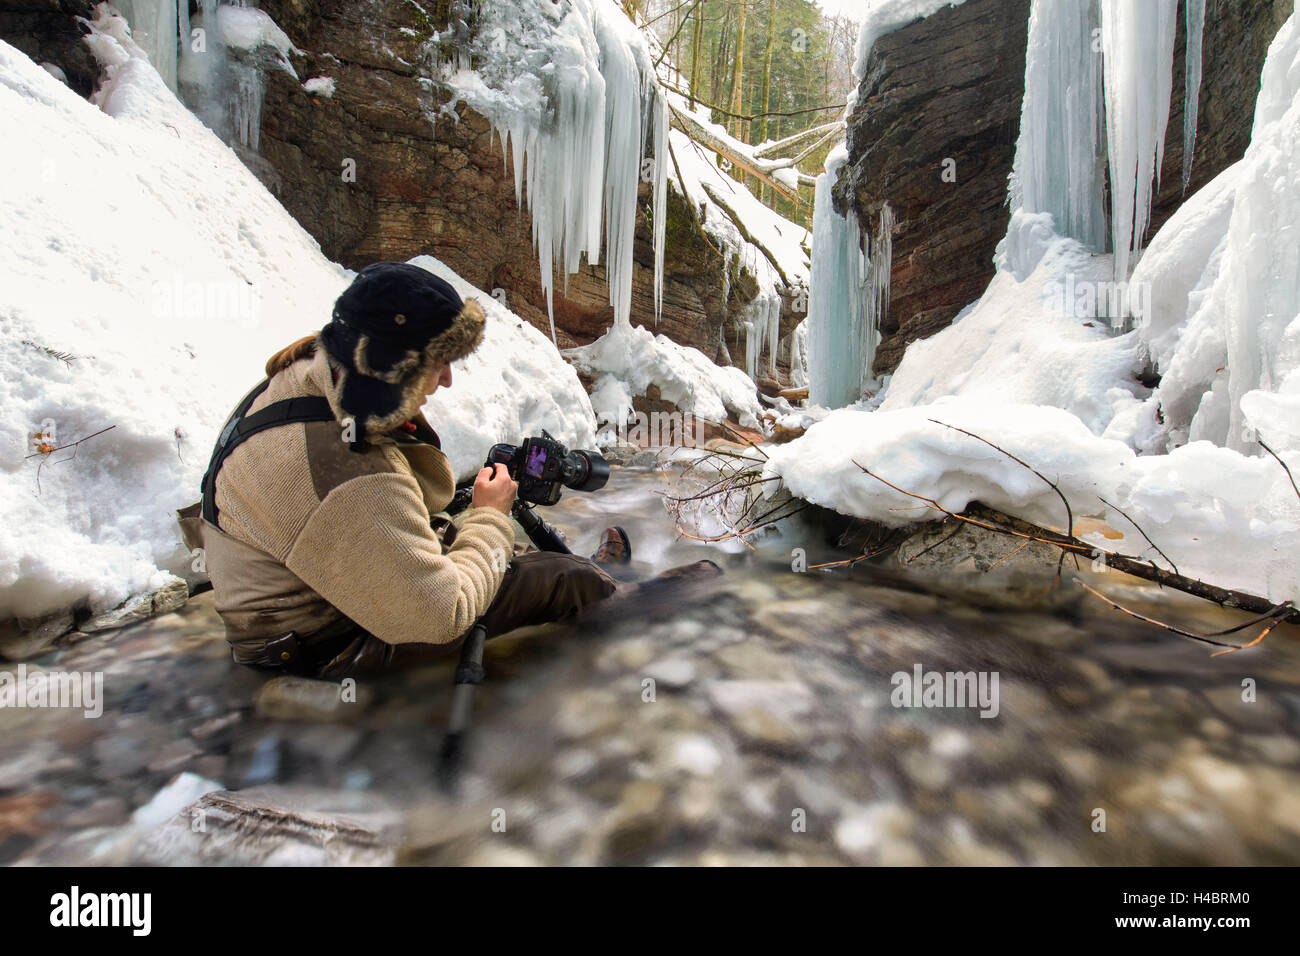 Photographer at the Taugl in winter, waterfall, Salzburg, Austria Stock Photo